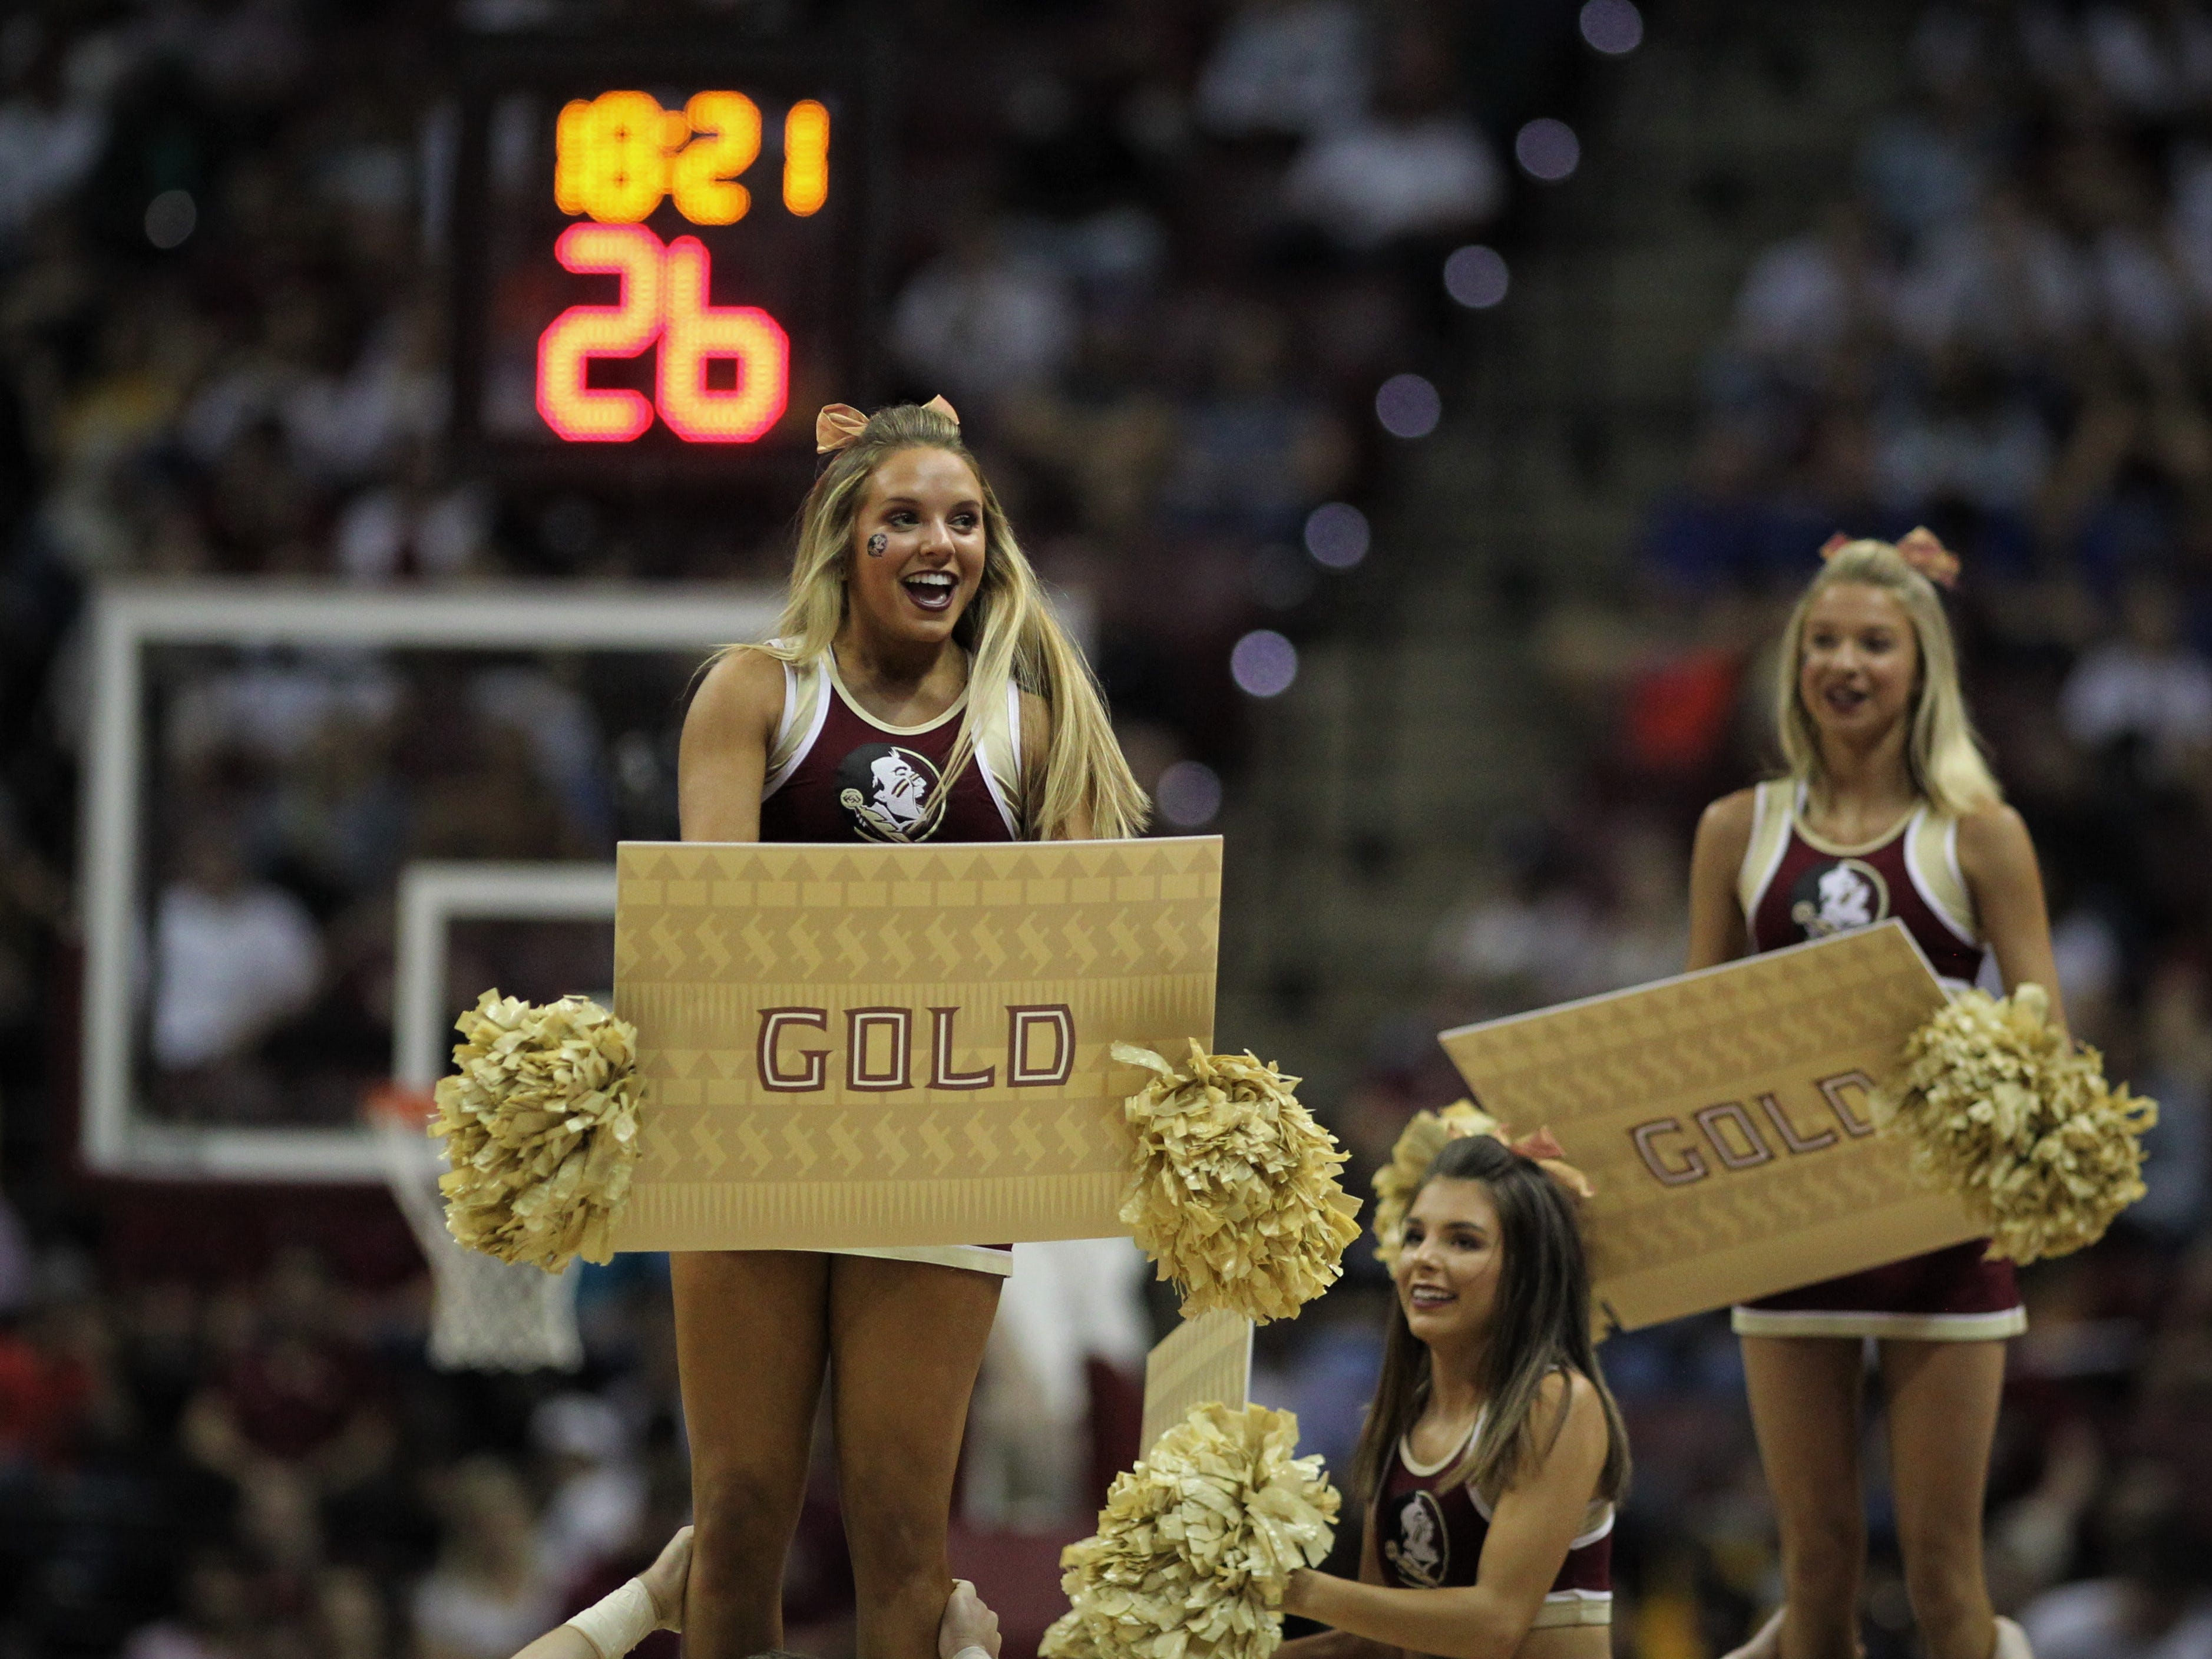 FSU's cheerleaders lead a Garnet & Gold cheer during the Sunshine Showdown game Tuesday at the Tucker Civic Center.